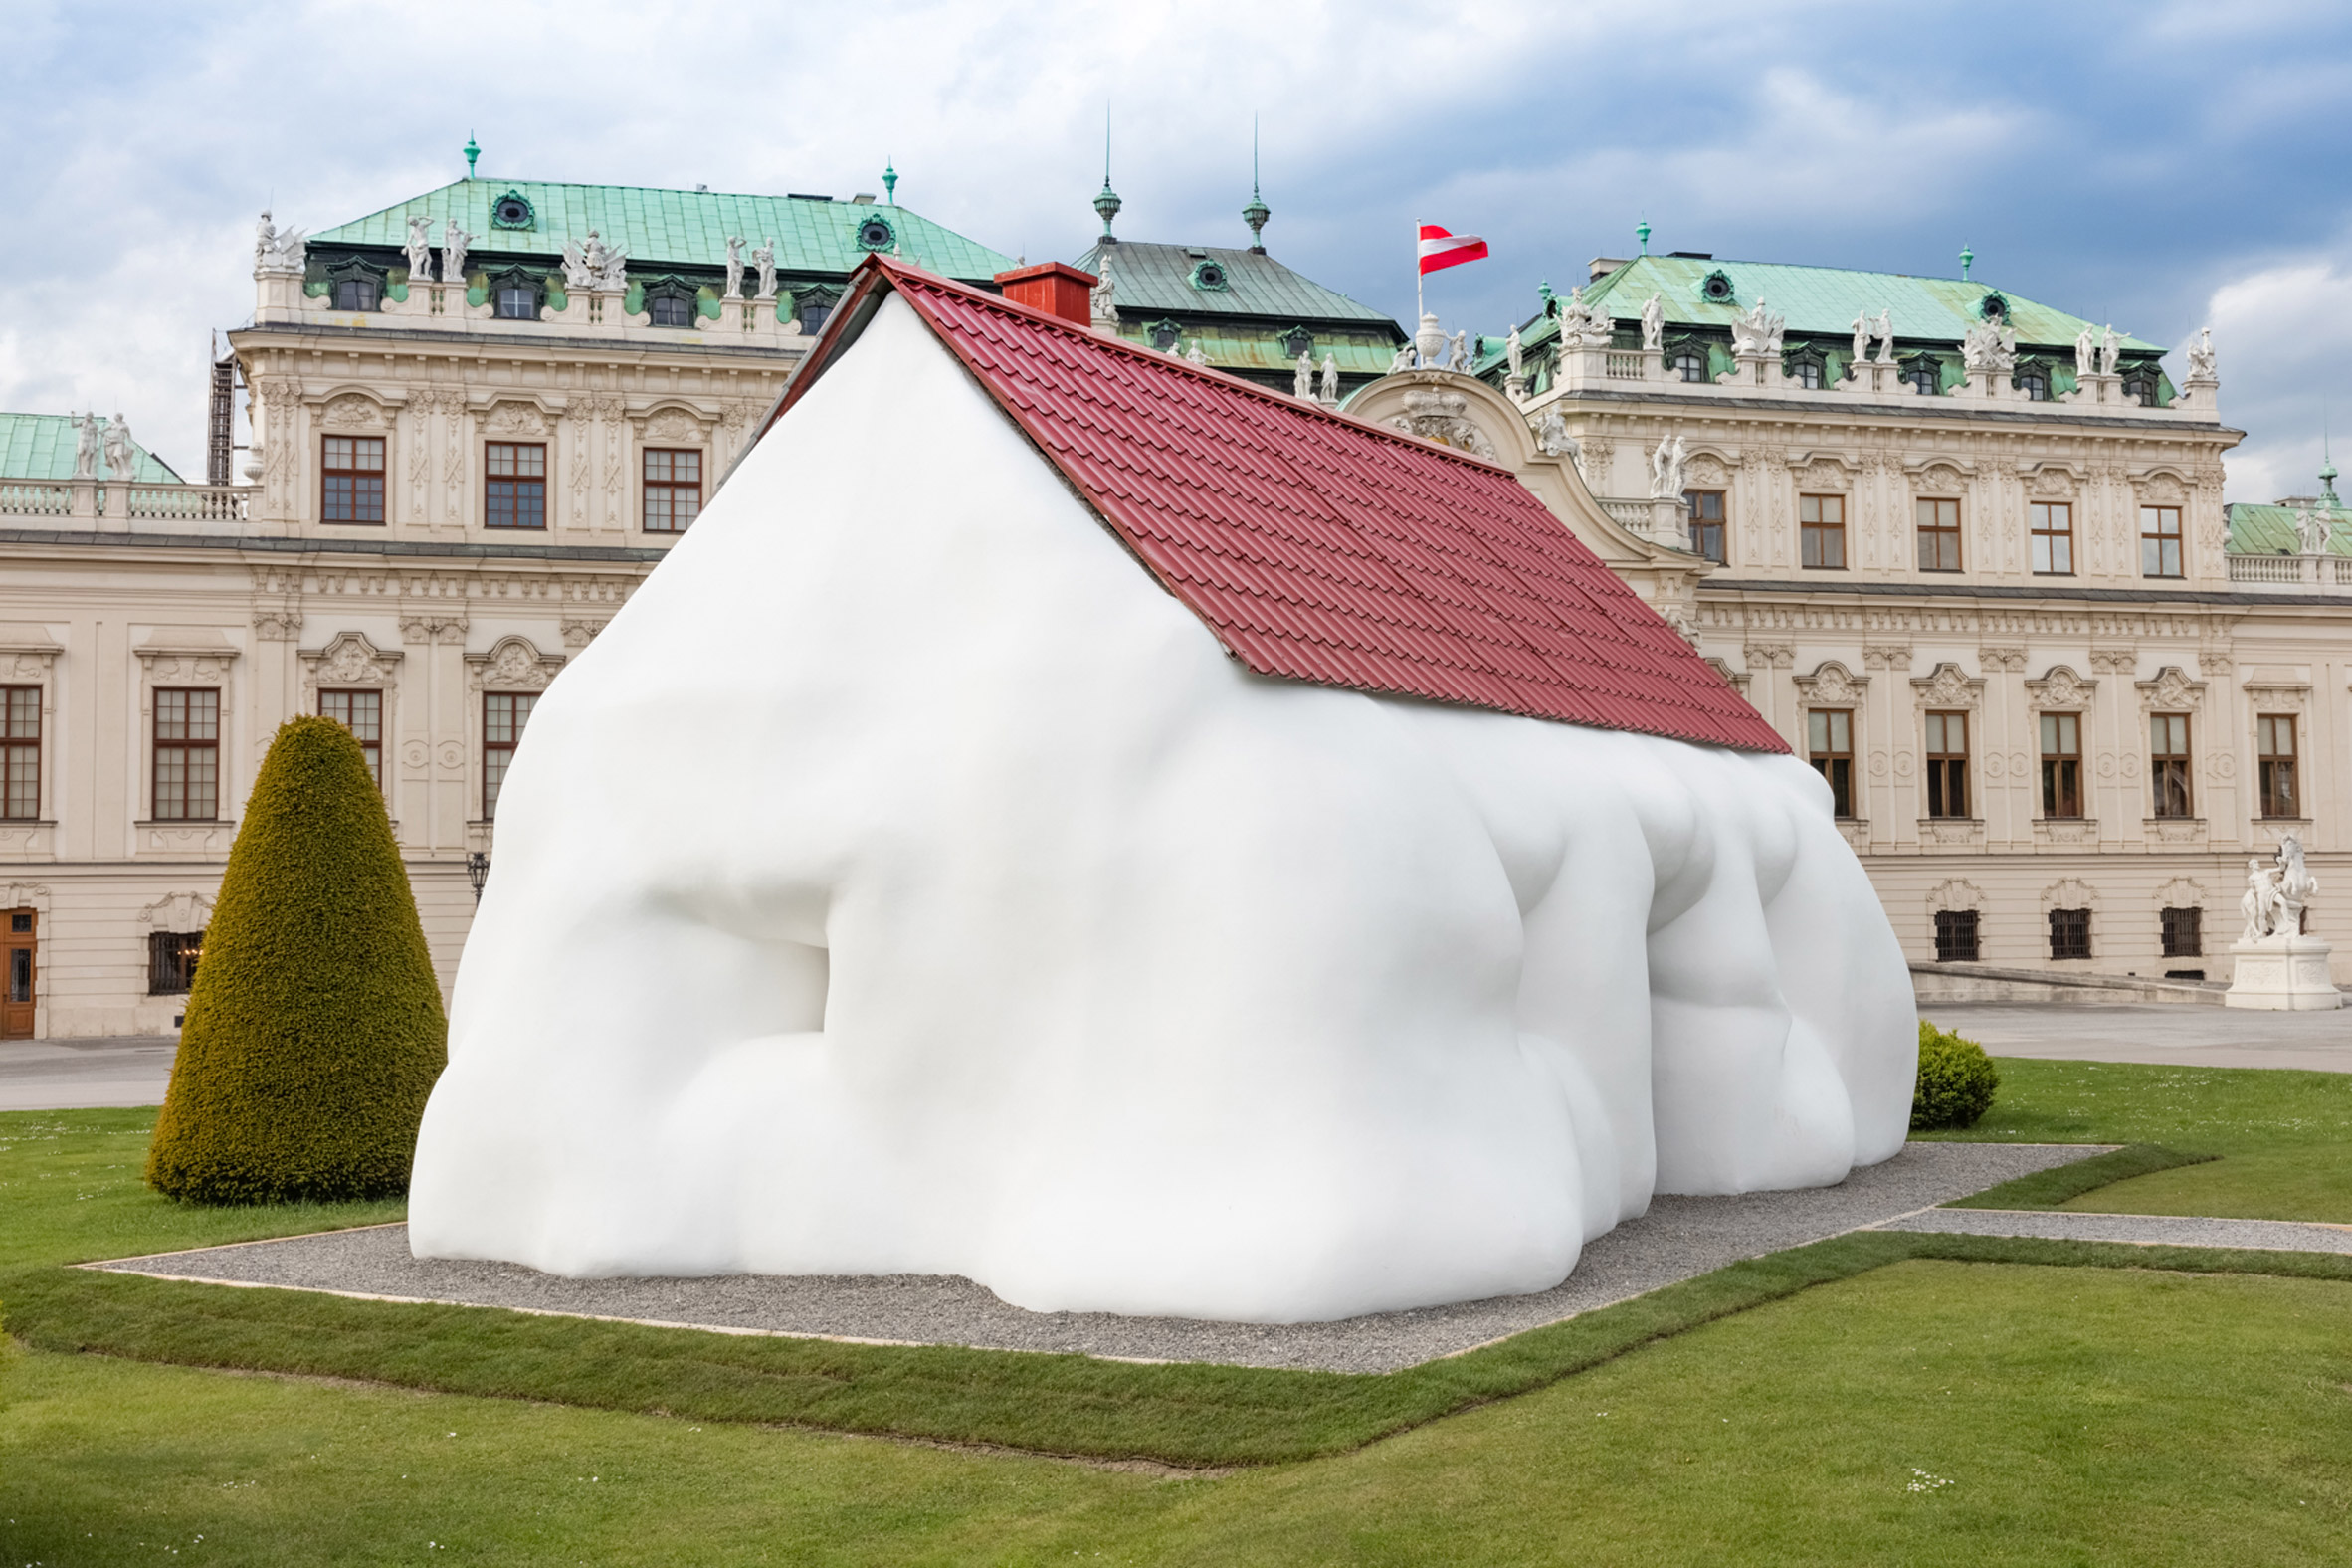 Erwin Wurm's Fat House installed outside baroque palace in Vienna